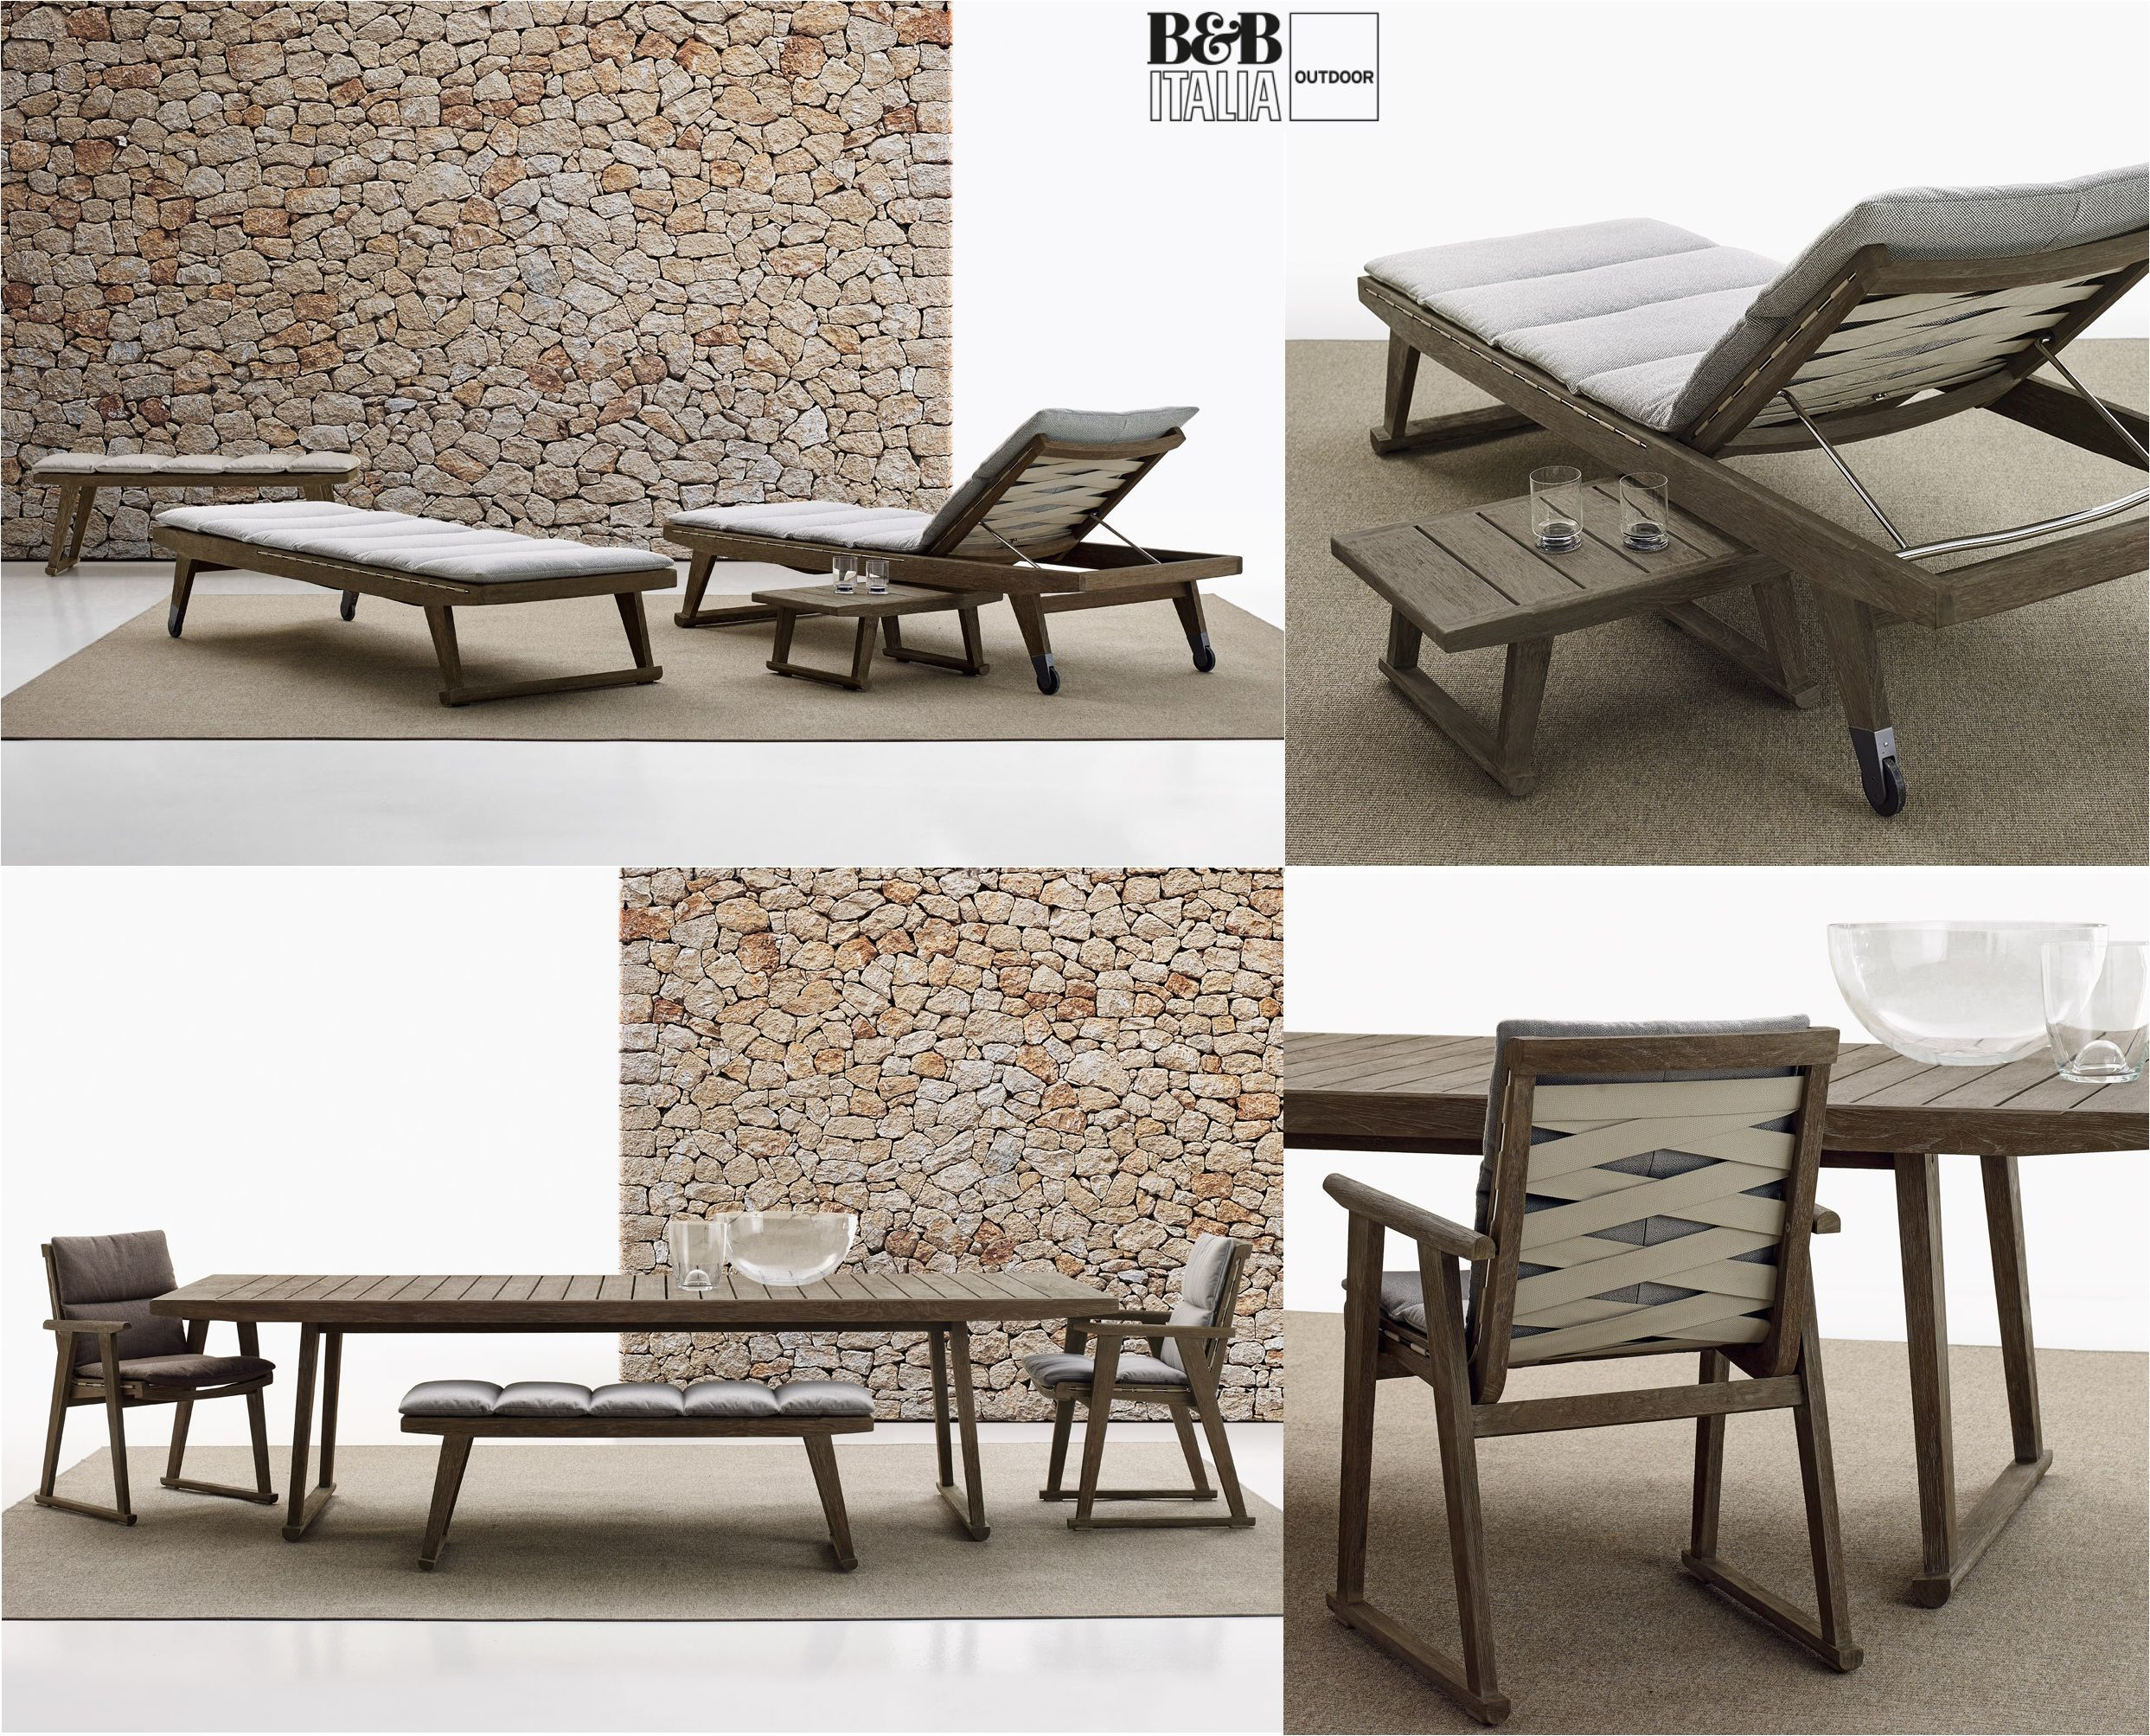 GIO Collection chaise longue sunbeds armchairs chairs tables